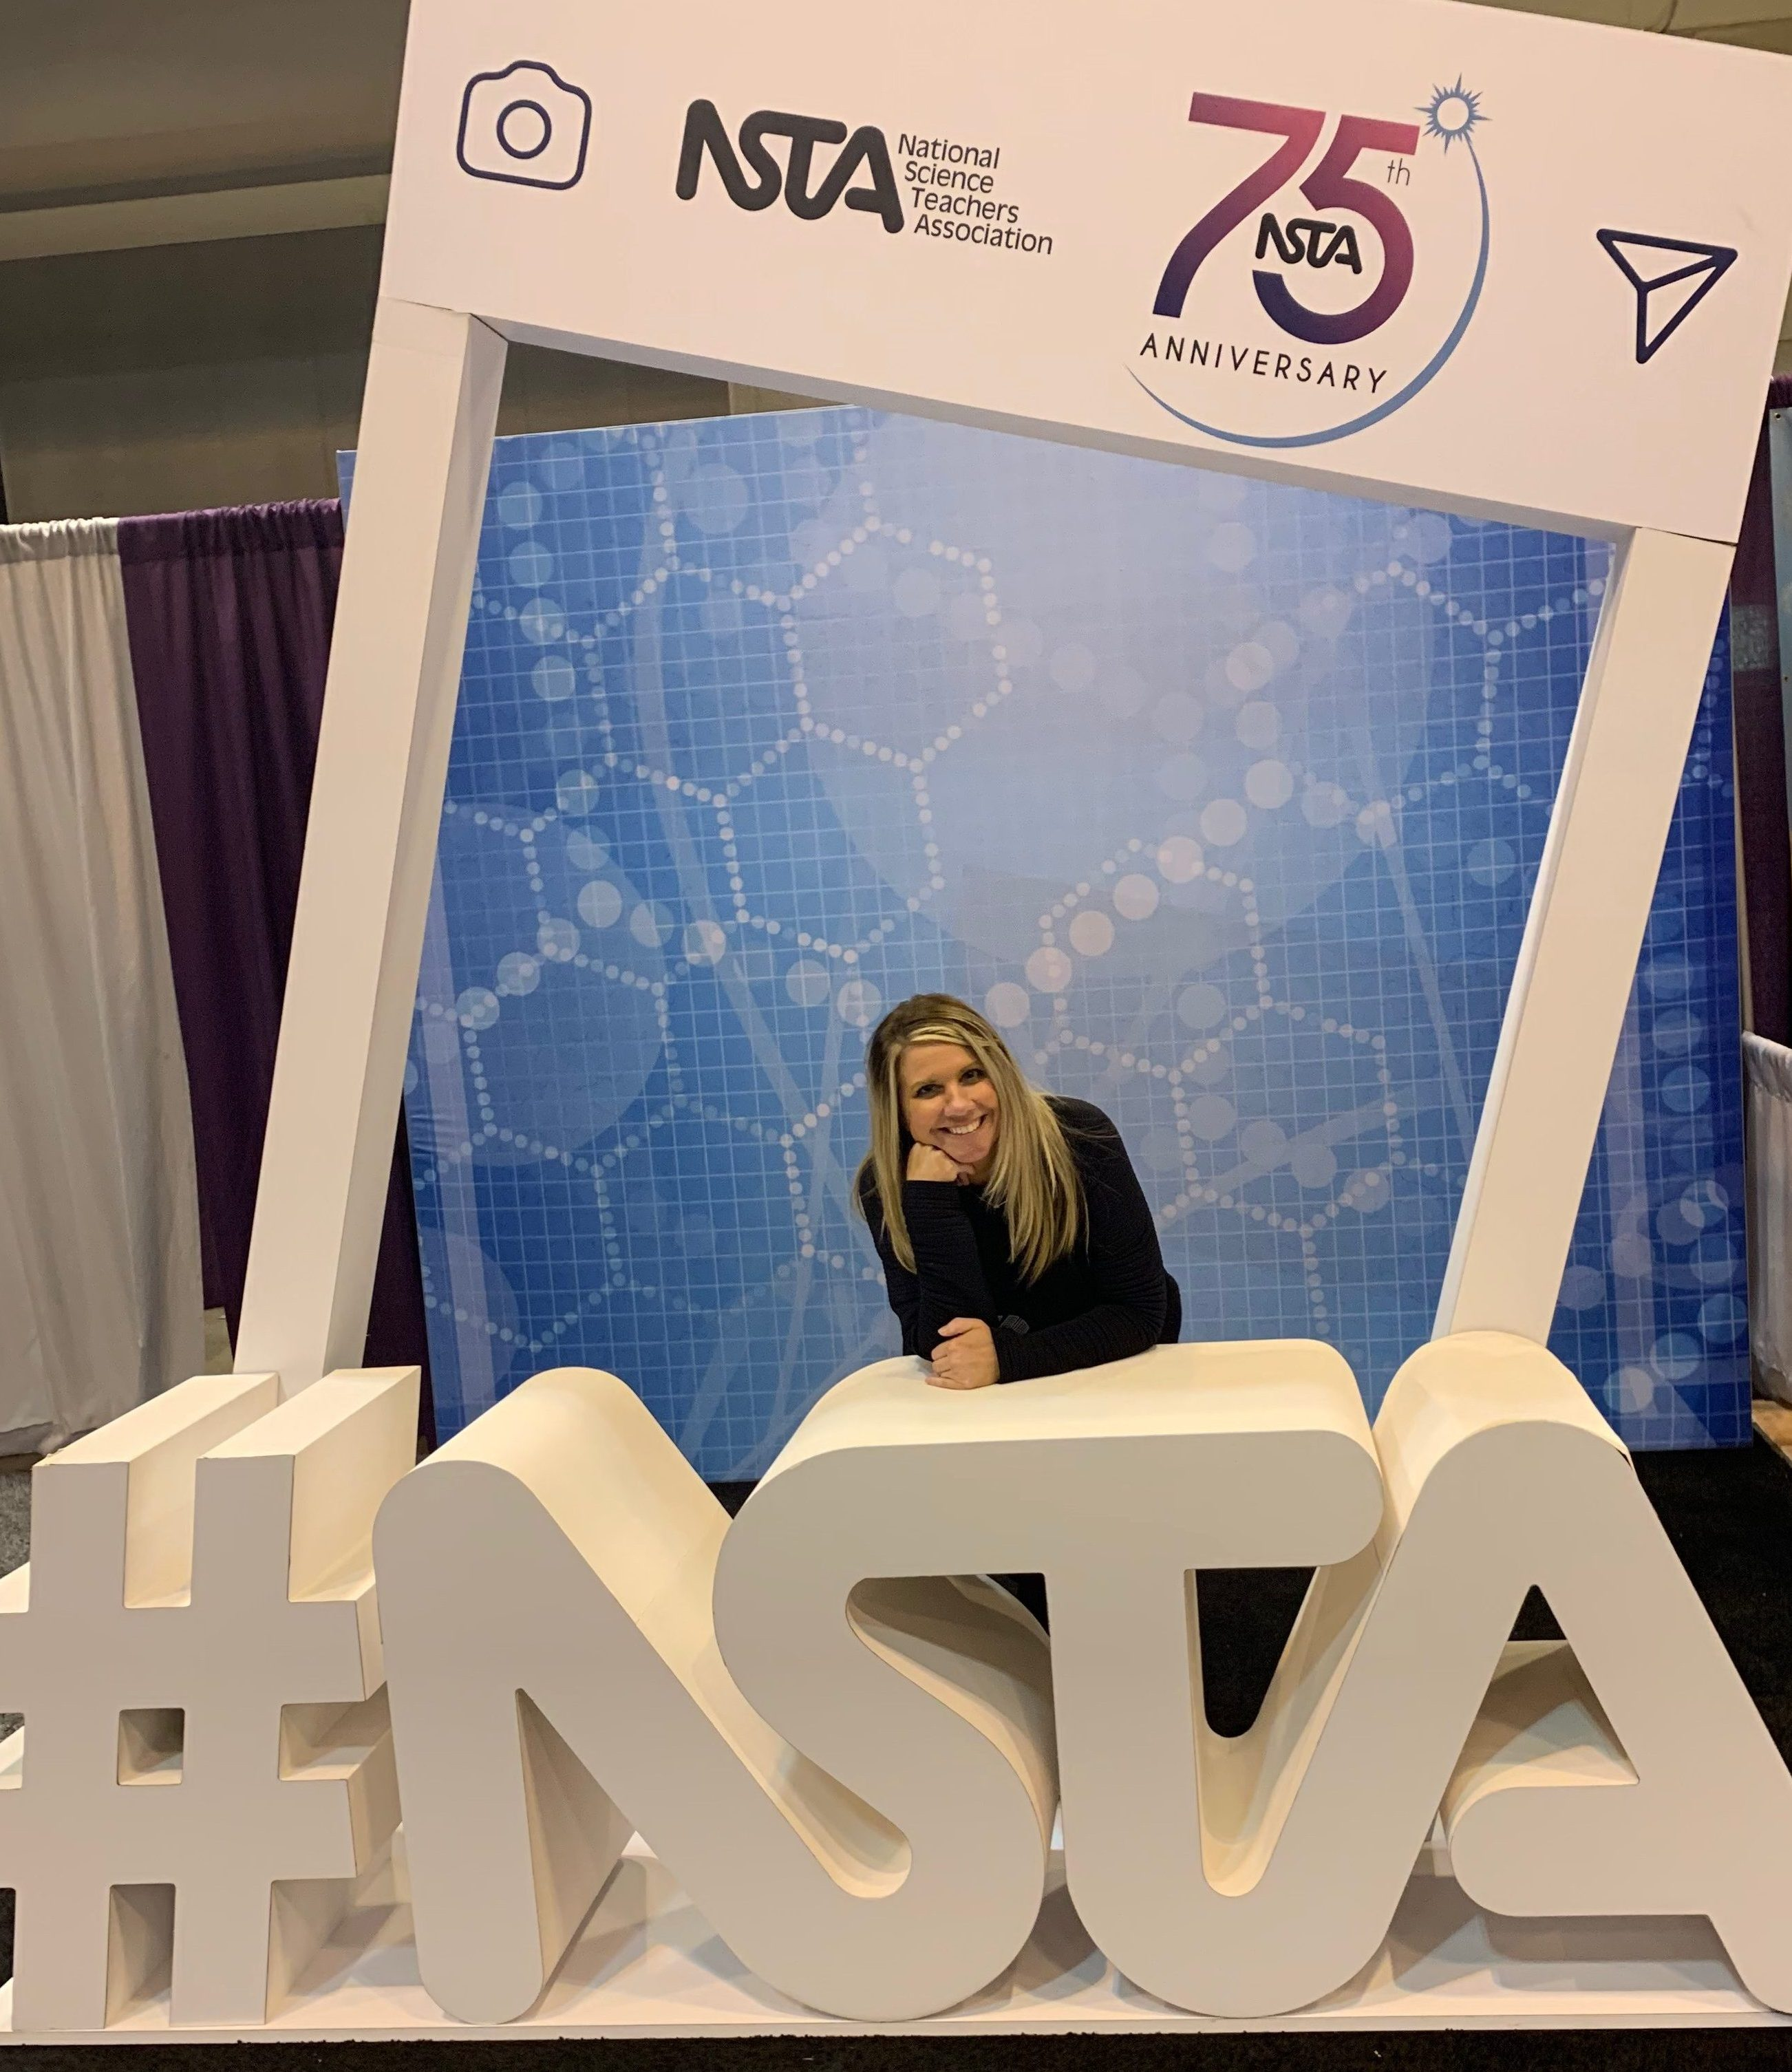 NSTA 2019 Erica Parsell e1570744573703